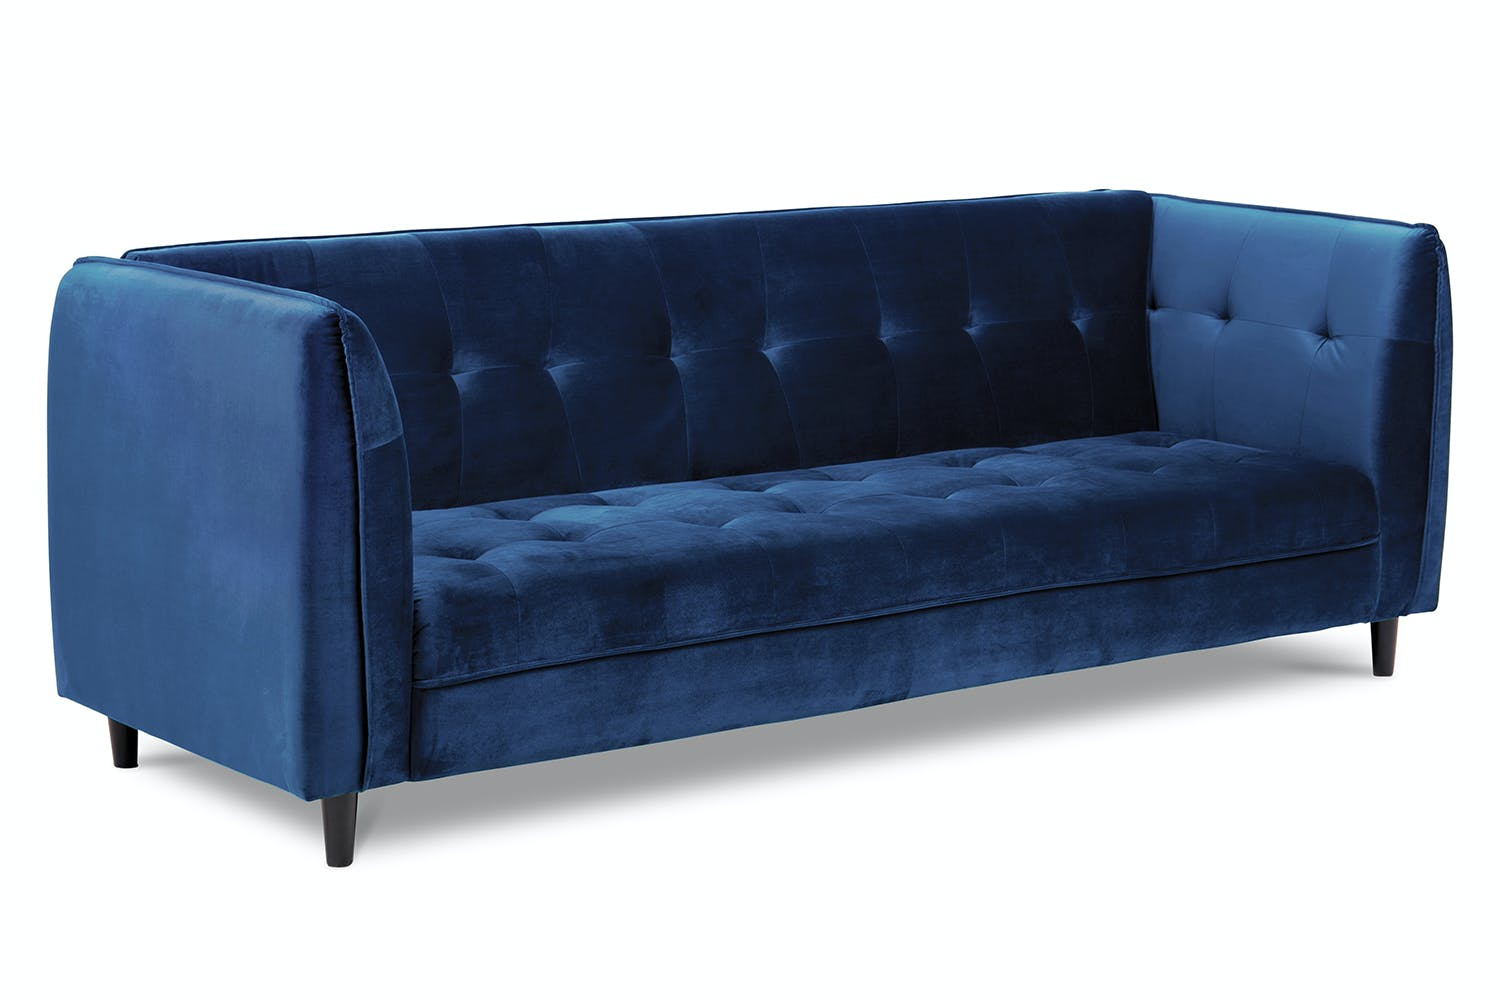 Misha Jumbo Sofa Bed | Blue